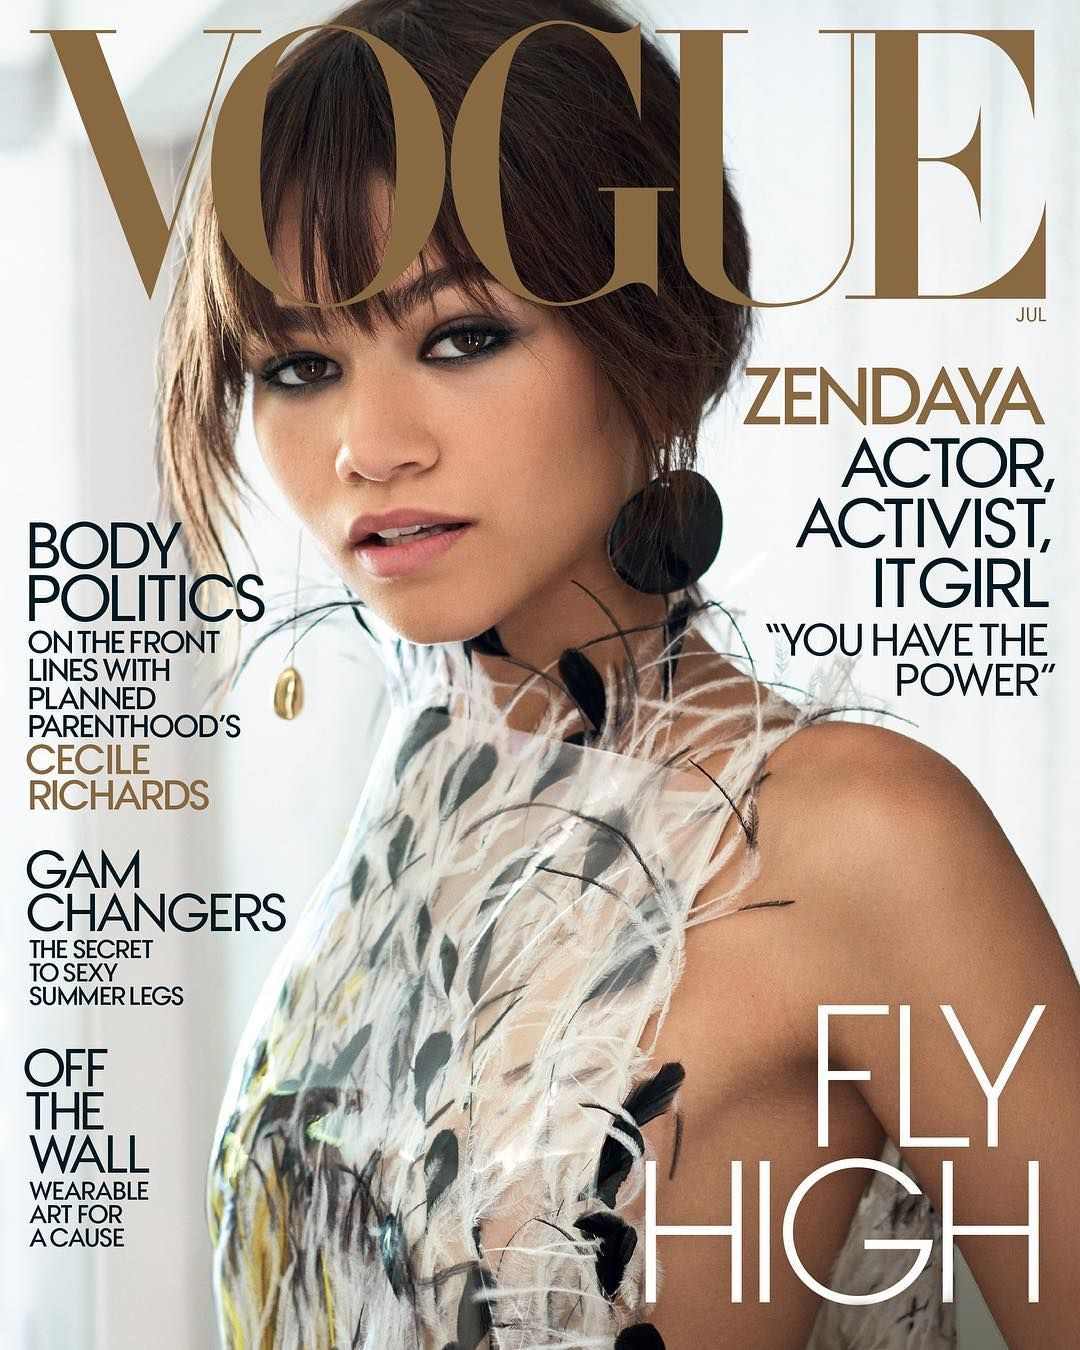 Zendaya is out promoting her new spider man film and the actress is the july 2017 cover star of vogue magazine on the cover which was s